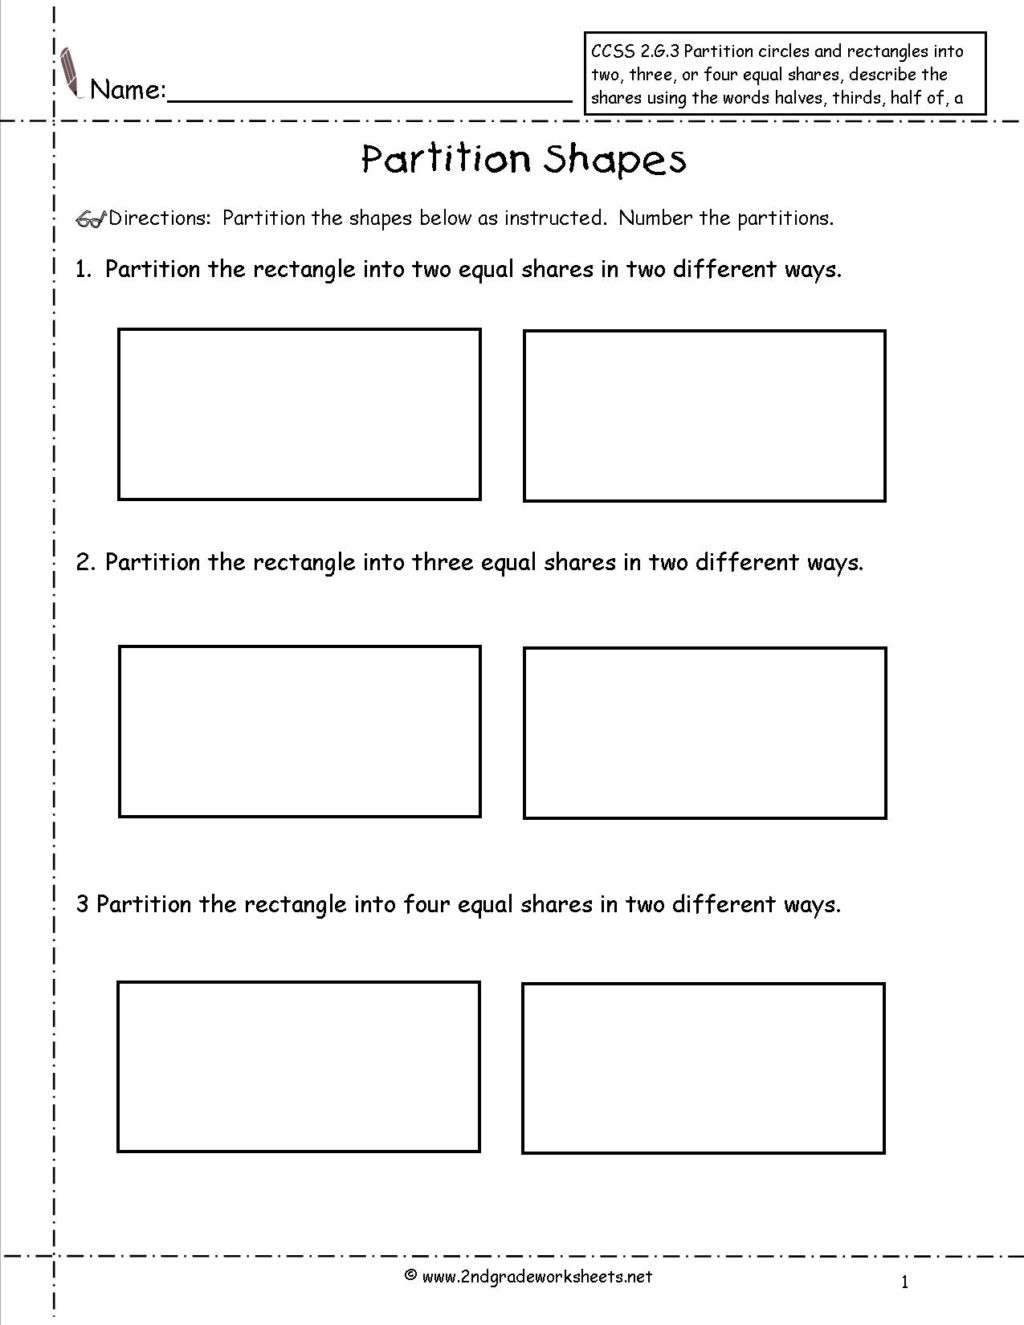 Second Grade Geometry Worksheets Worksheet 2nd Grade Geometry Worksheets Ccss G Partition